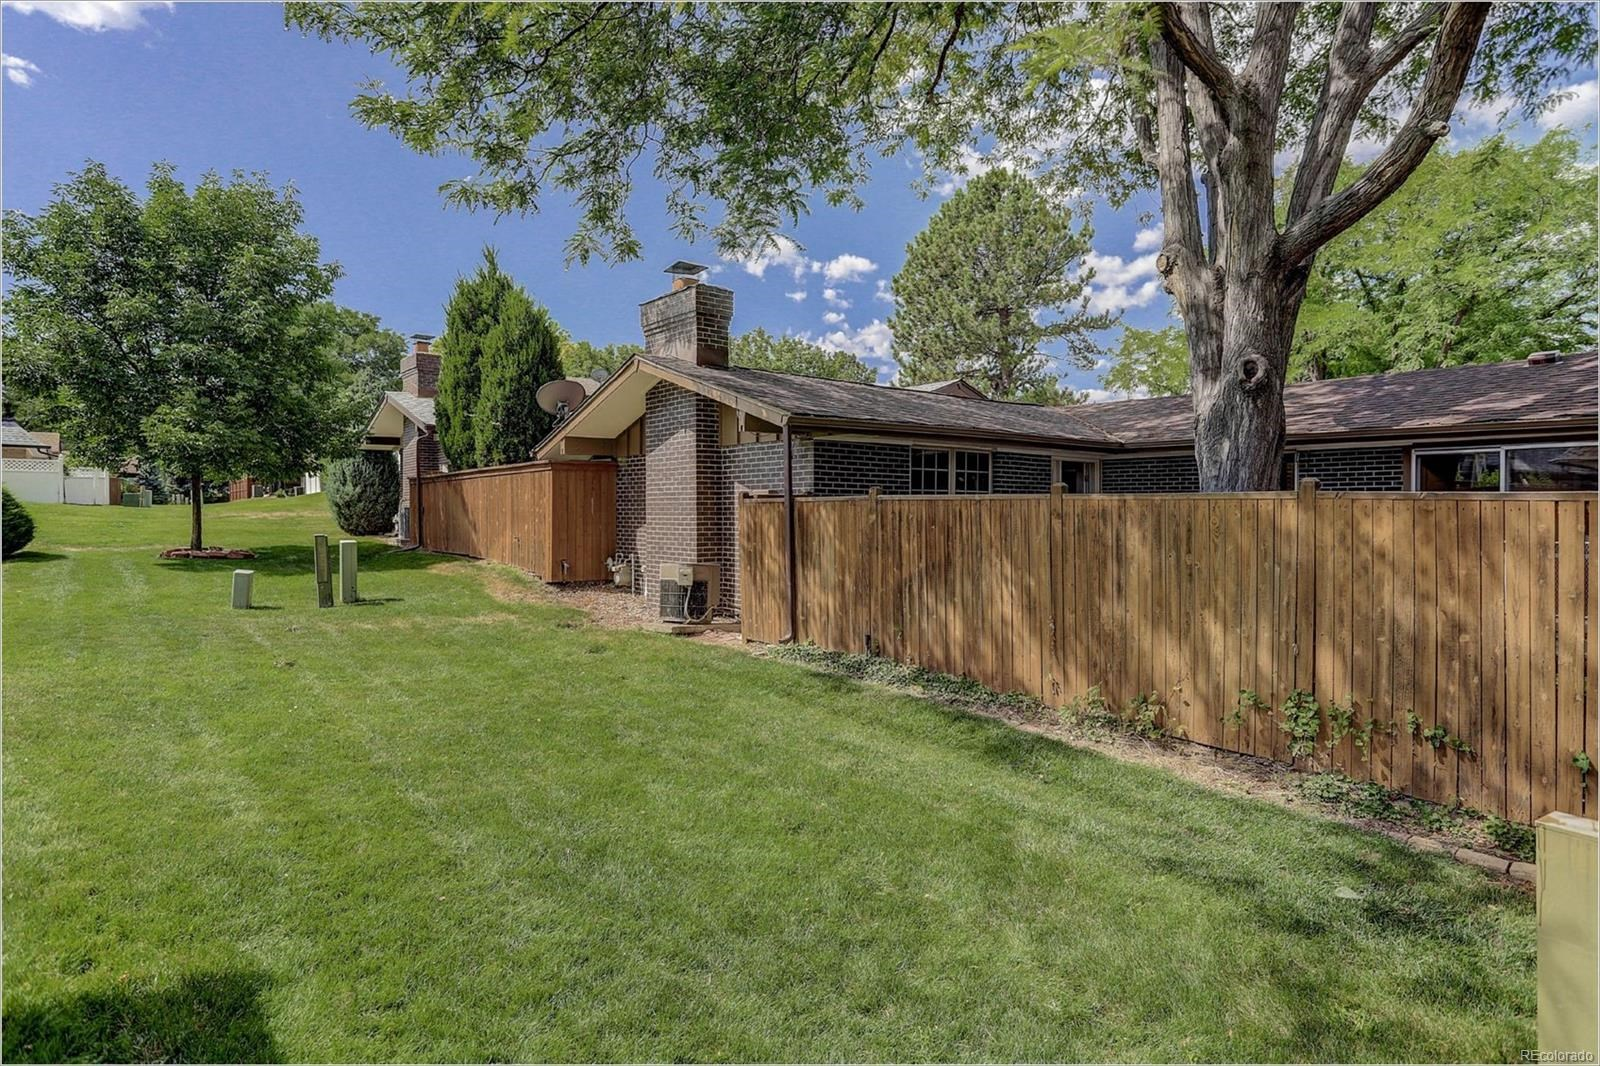 MLS# 3526131 - 2 - 70 S Upham Court, Lakewood, CO 80226